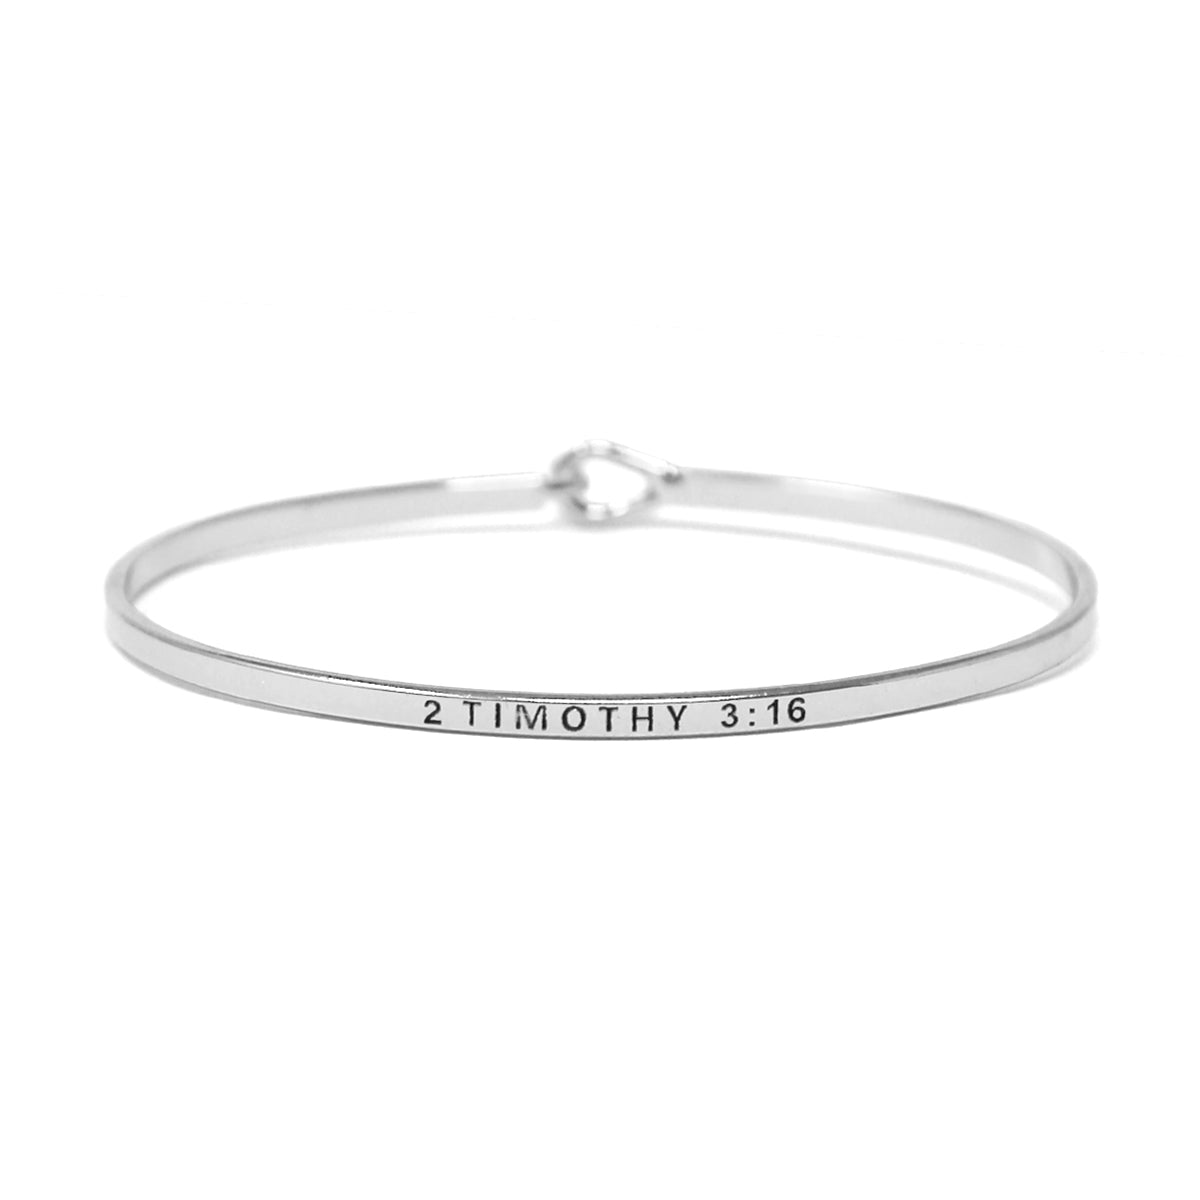 2 TIMOTHY 3: 16 Inspirational Message Bracelet